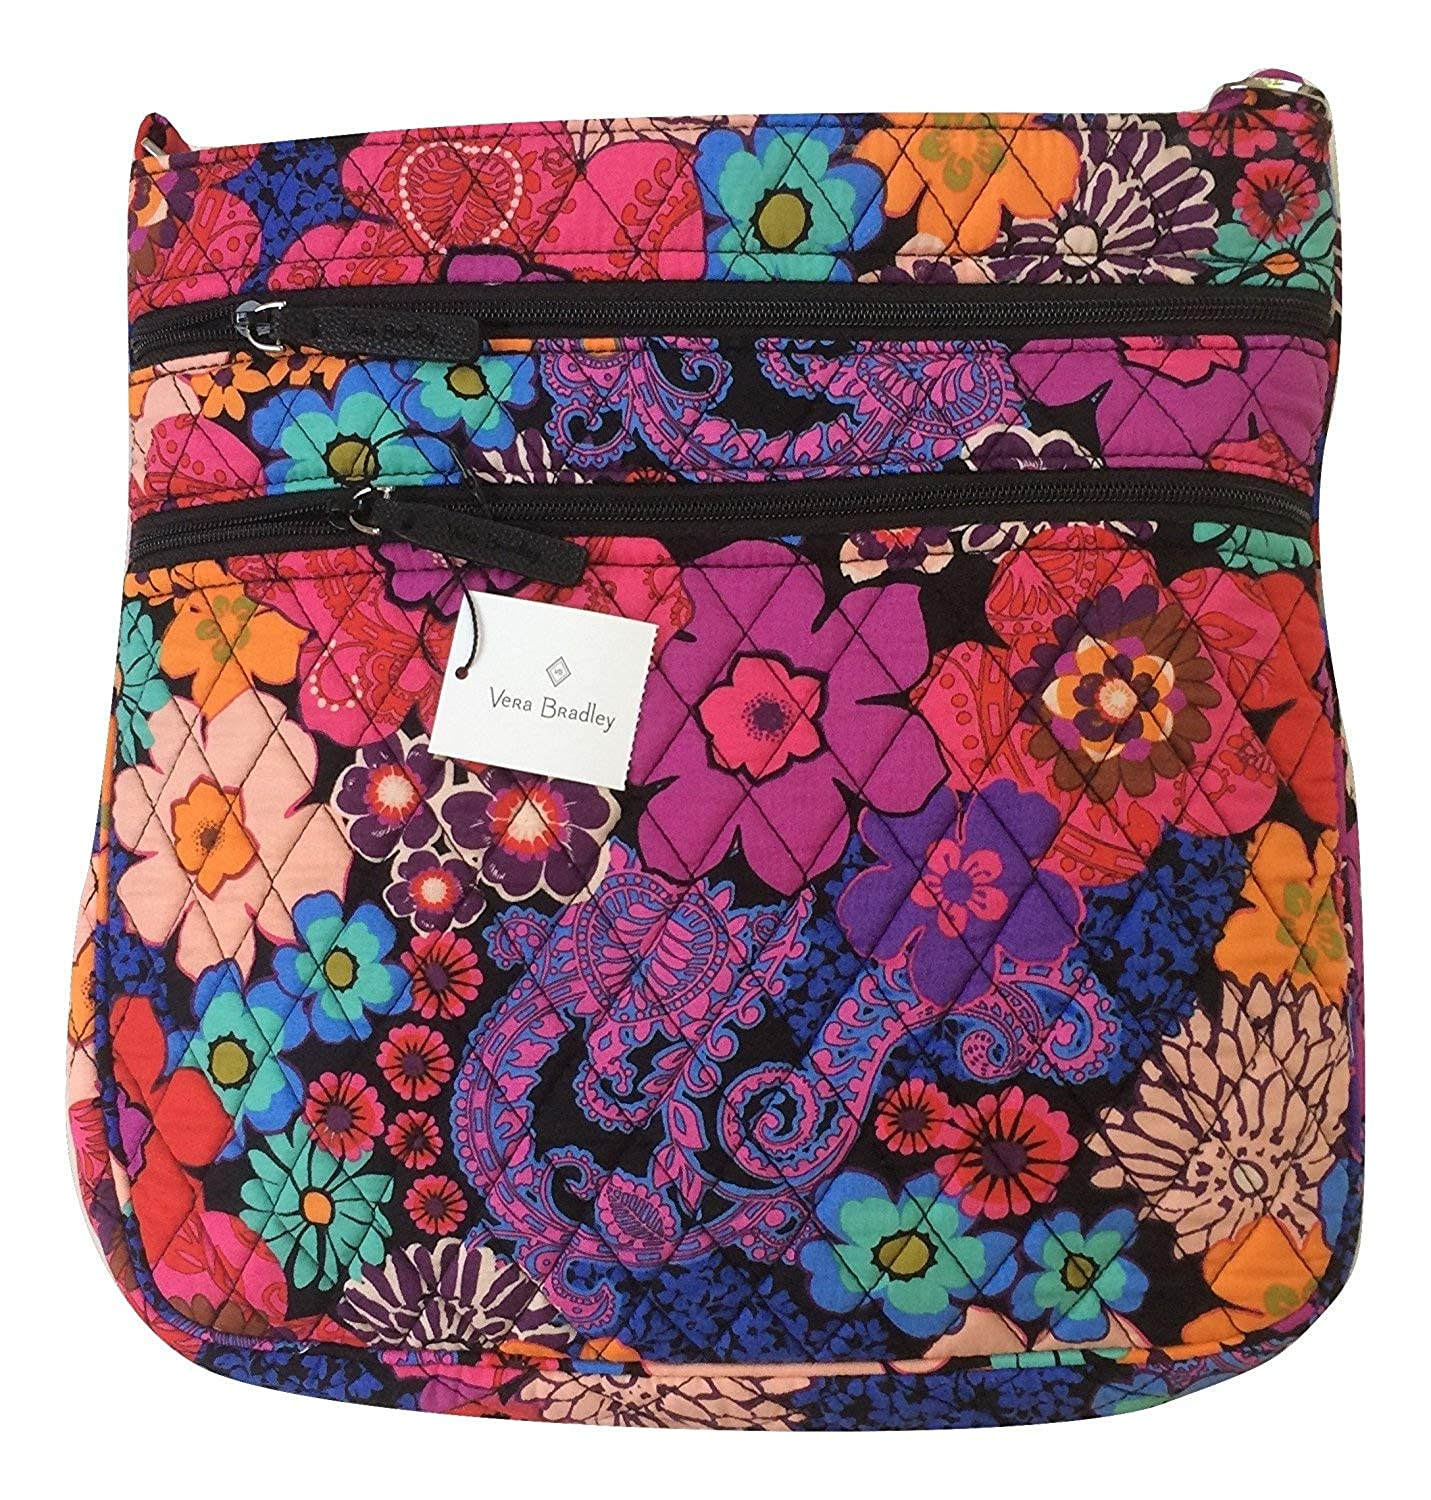 【即納!最大半額!】 Vera Bradley レディース B06ZZ18R5C Floral Fiesta Fiesta Vera With Interior Black Interior Floral Fiesta With Black Interior, アンドRバッグ:5ae7b8a8 --- egreensolutions.ca